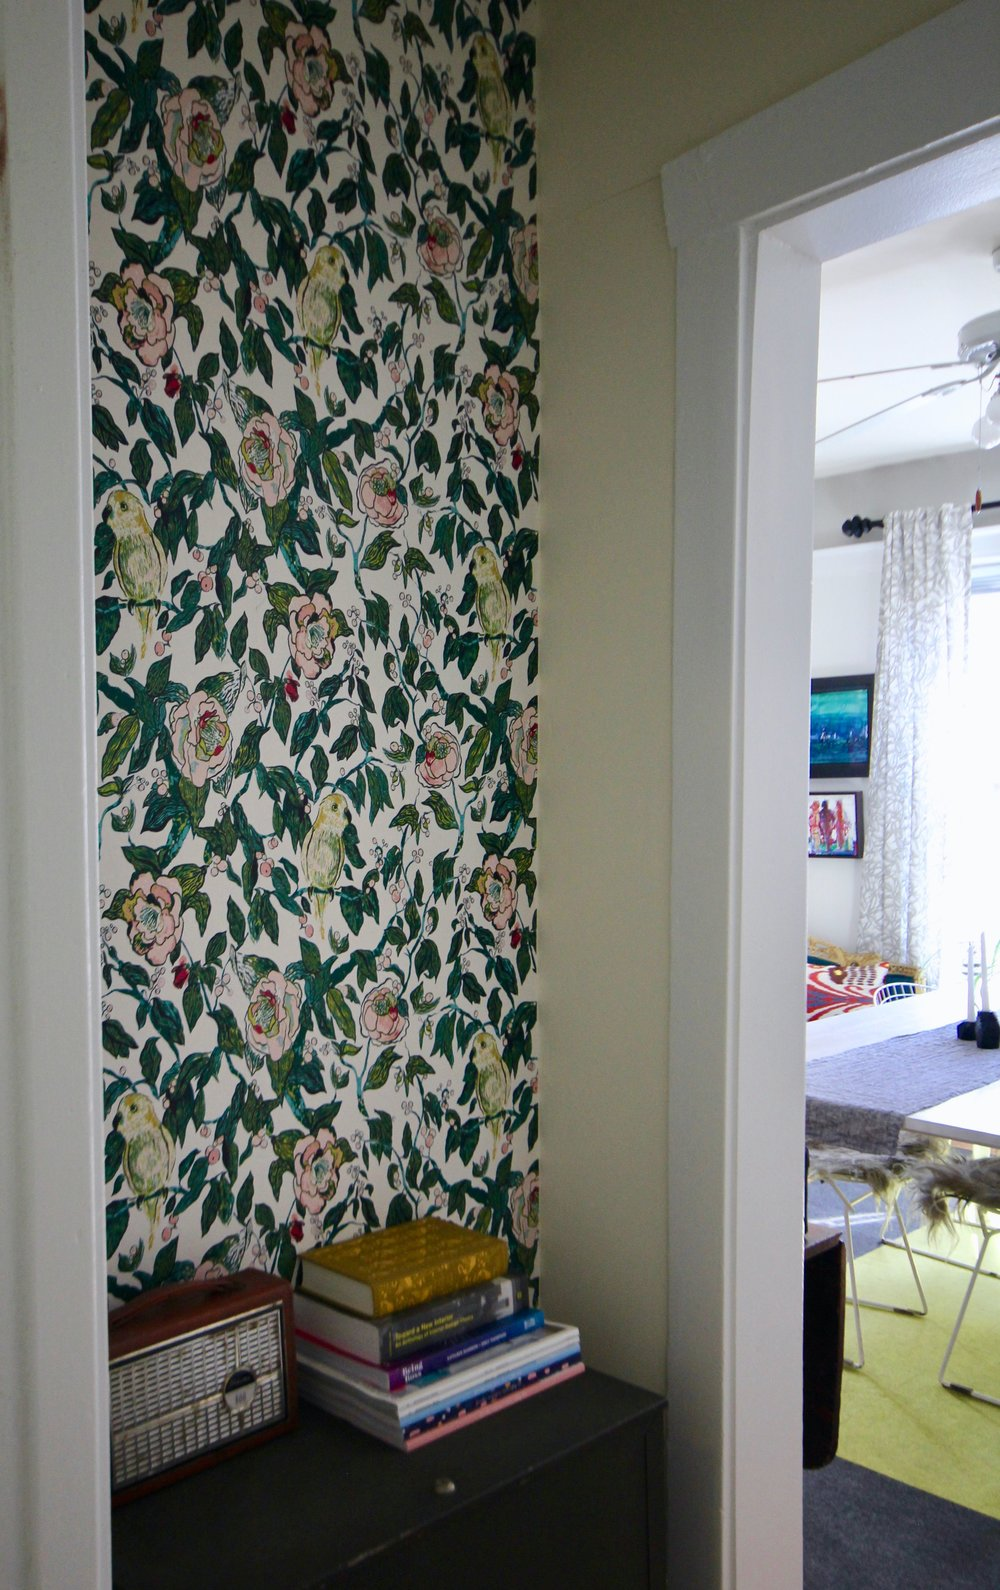 Floral wall paper in entry way of home design